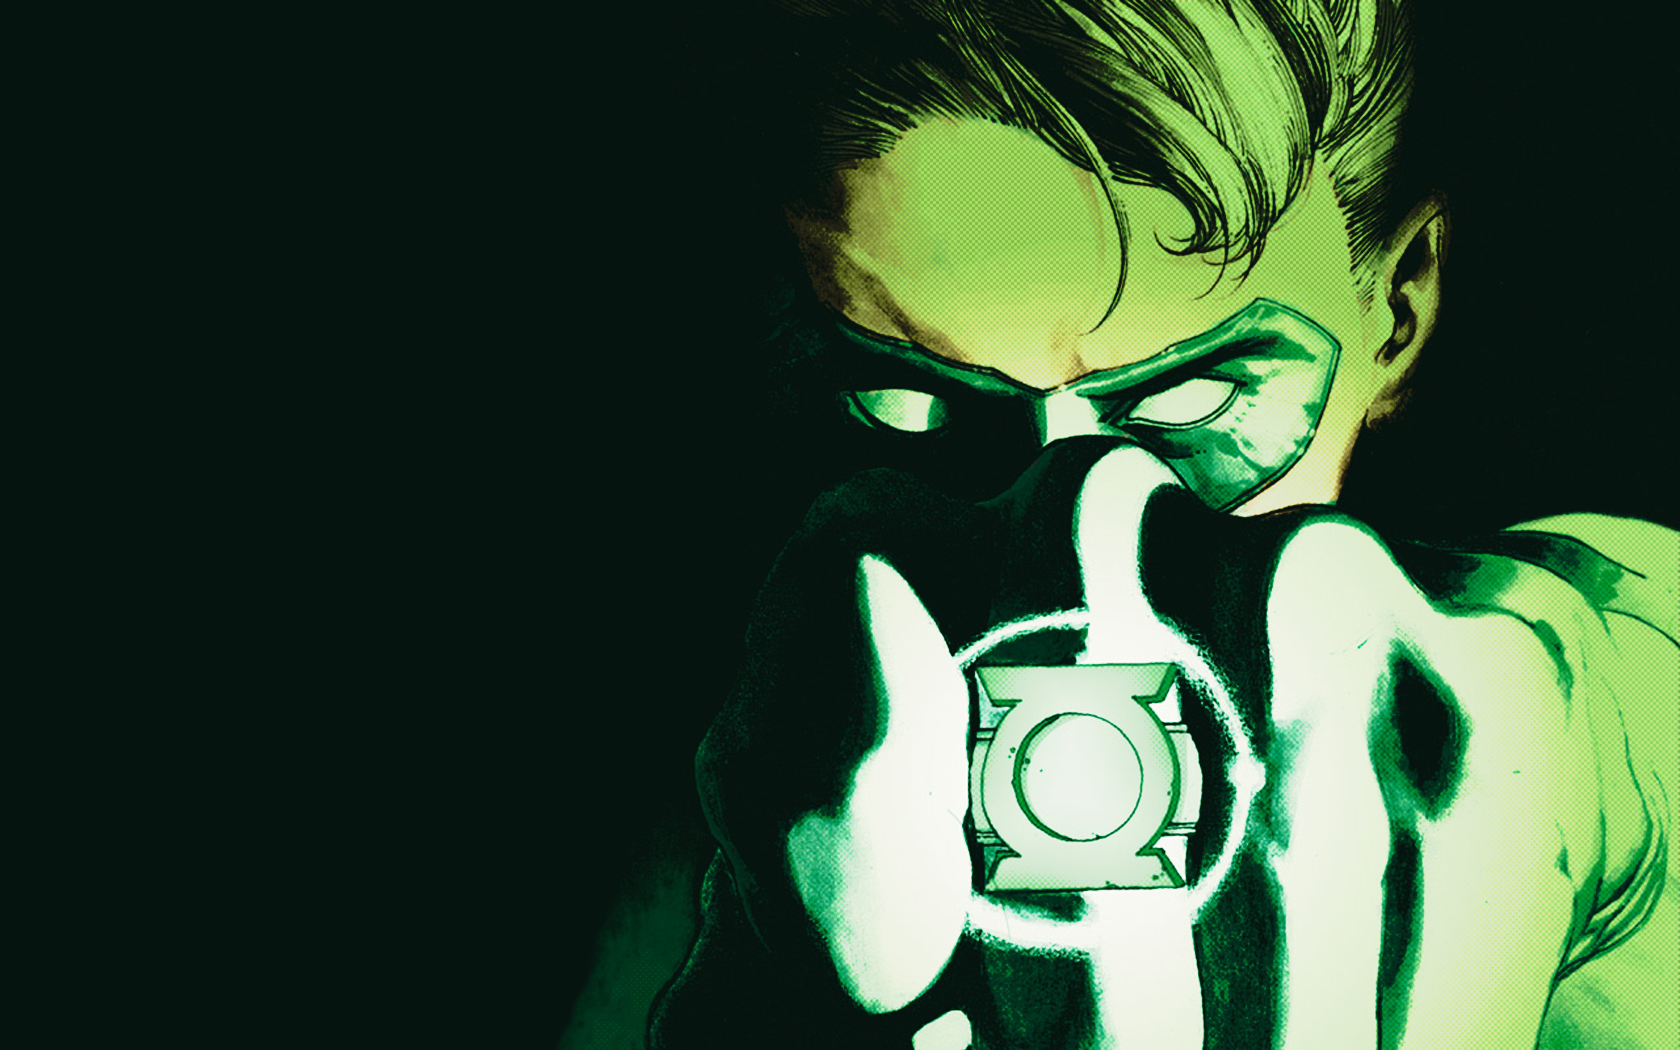 Beautiful Green Lantern Pics in HQFX